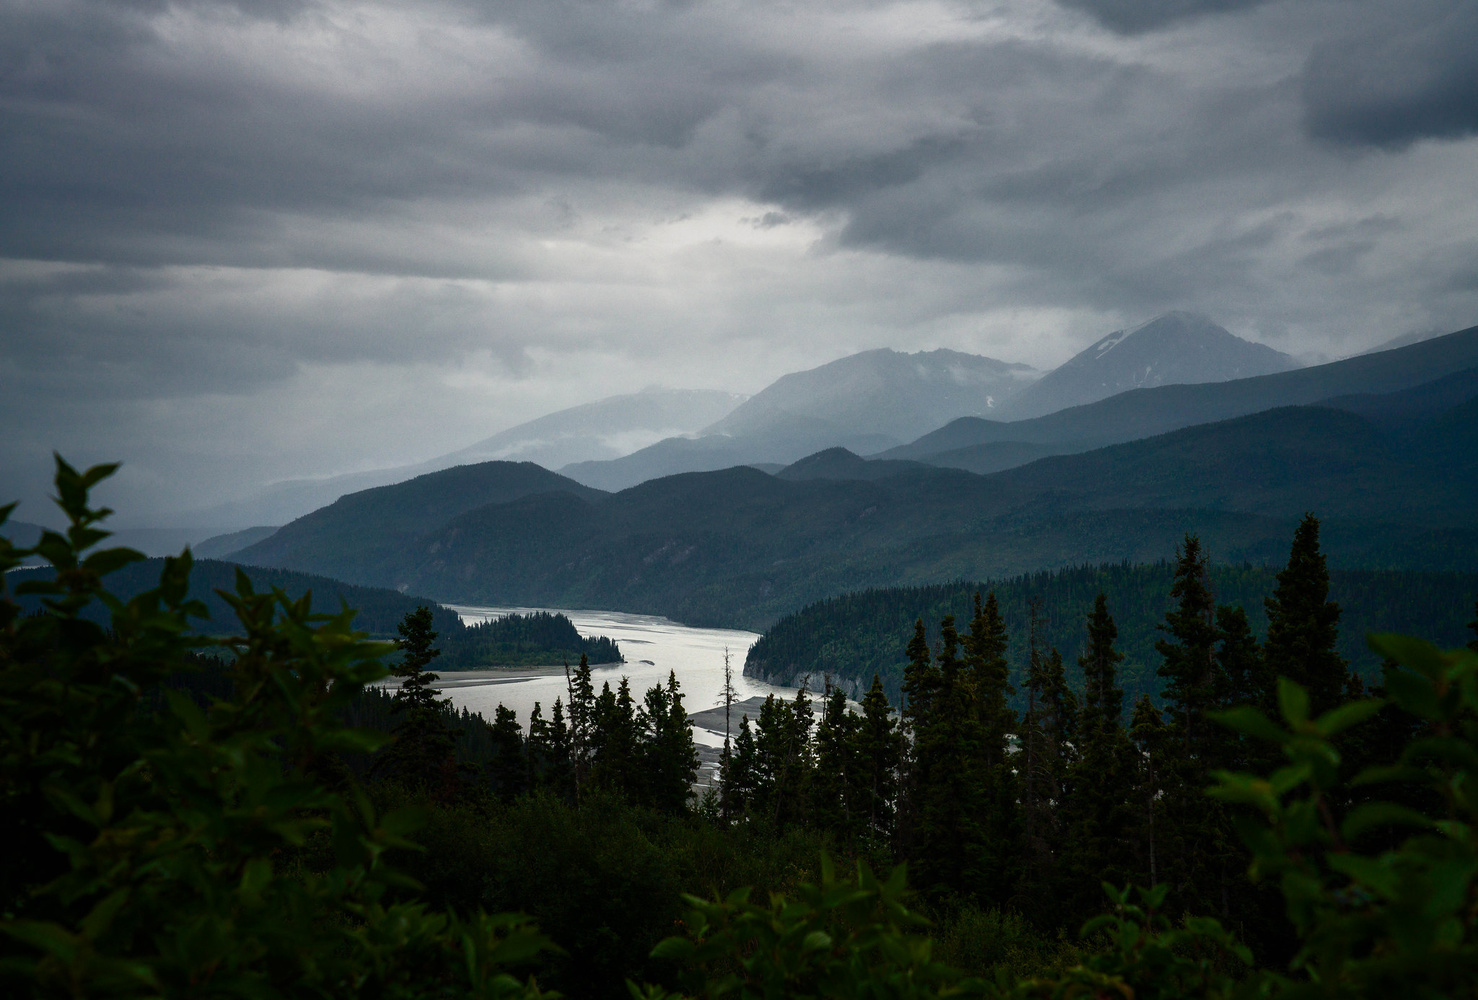 Rainy Days on the Chitina by TYLER YATES